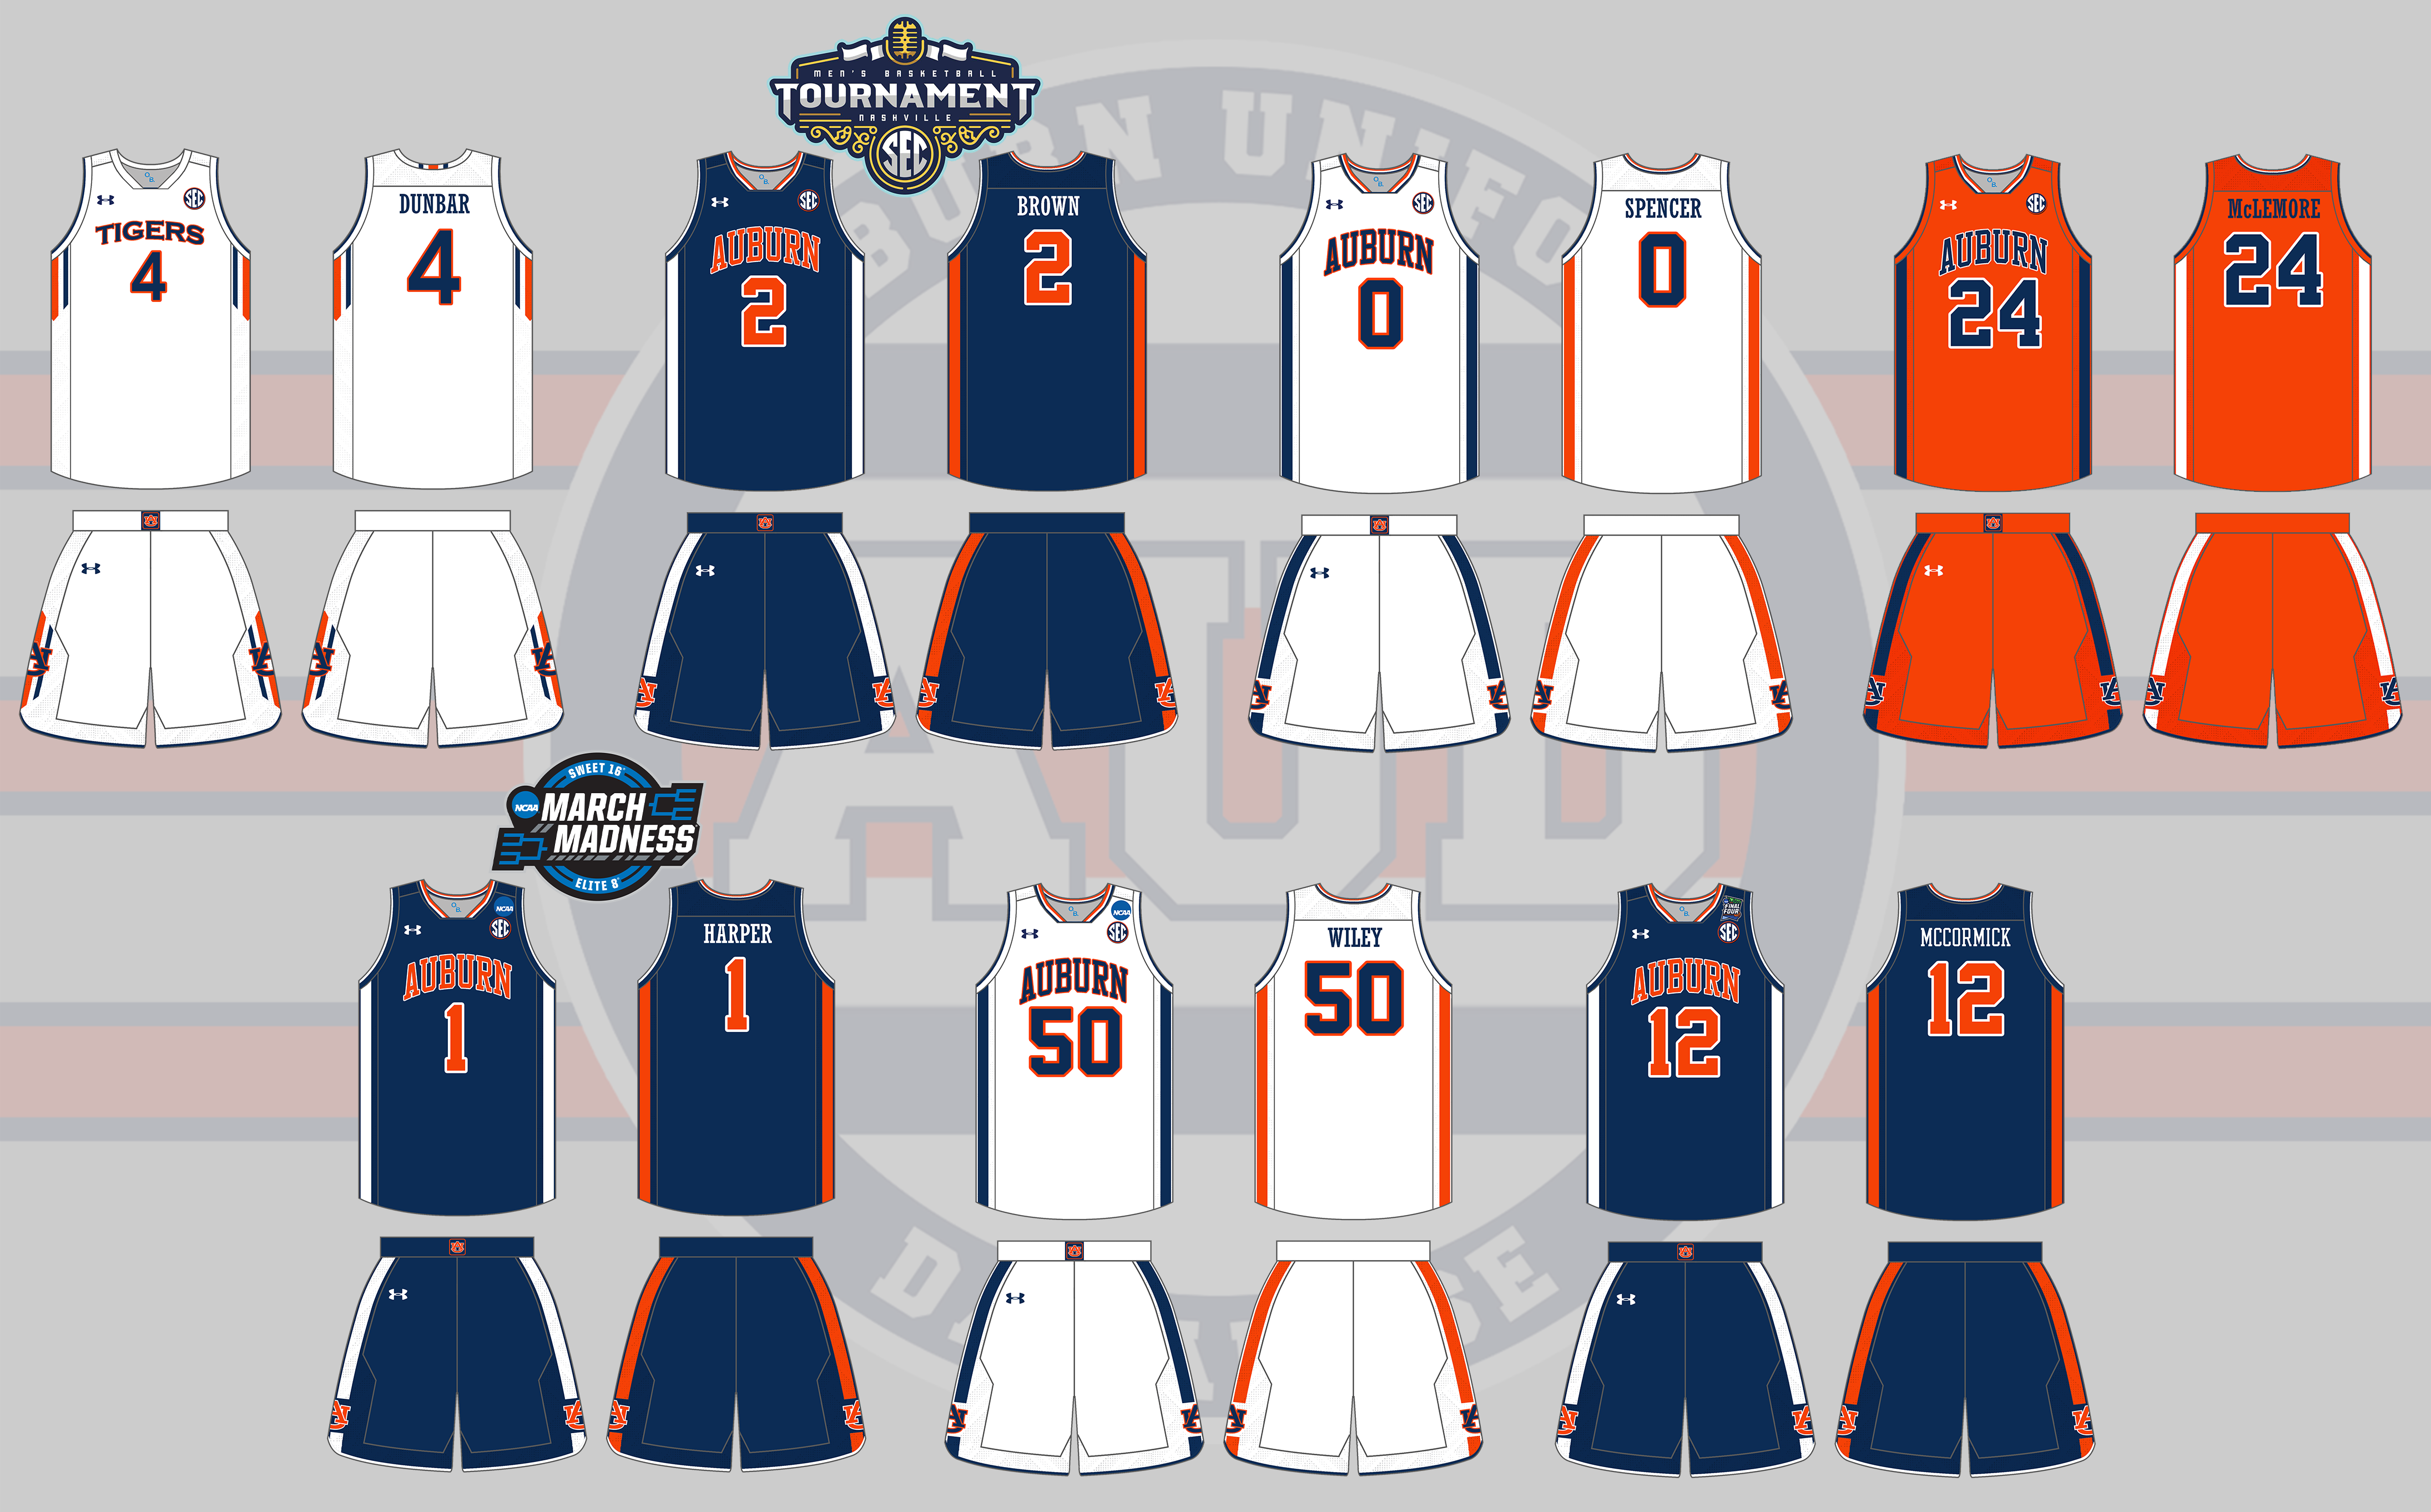 http://gamedayr.com/wp-content/slideshow/2012/10/2012-auburn-under-armour-basketball-uniforms/full/2012-auburn-basketball-uniforms-new1-570x380.jpeg